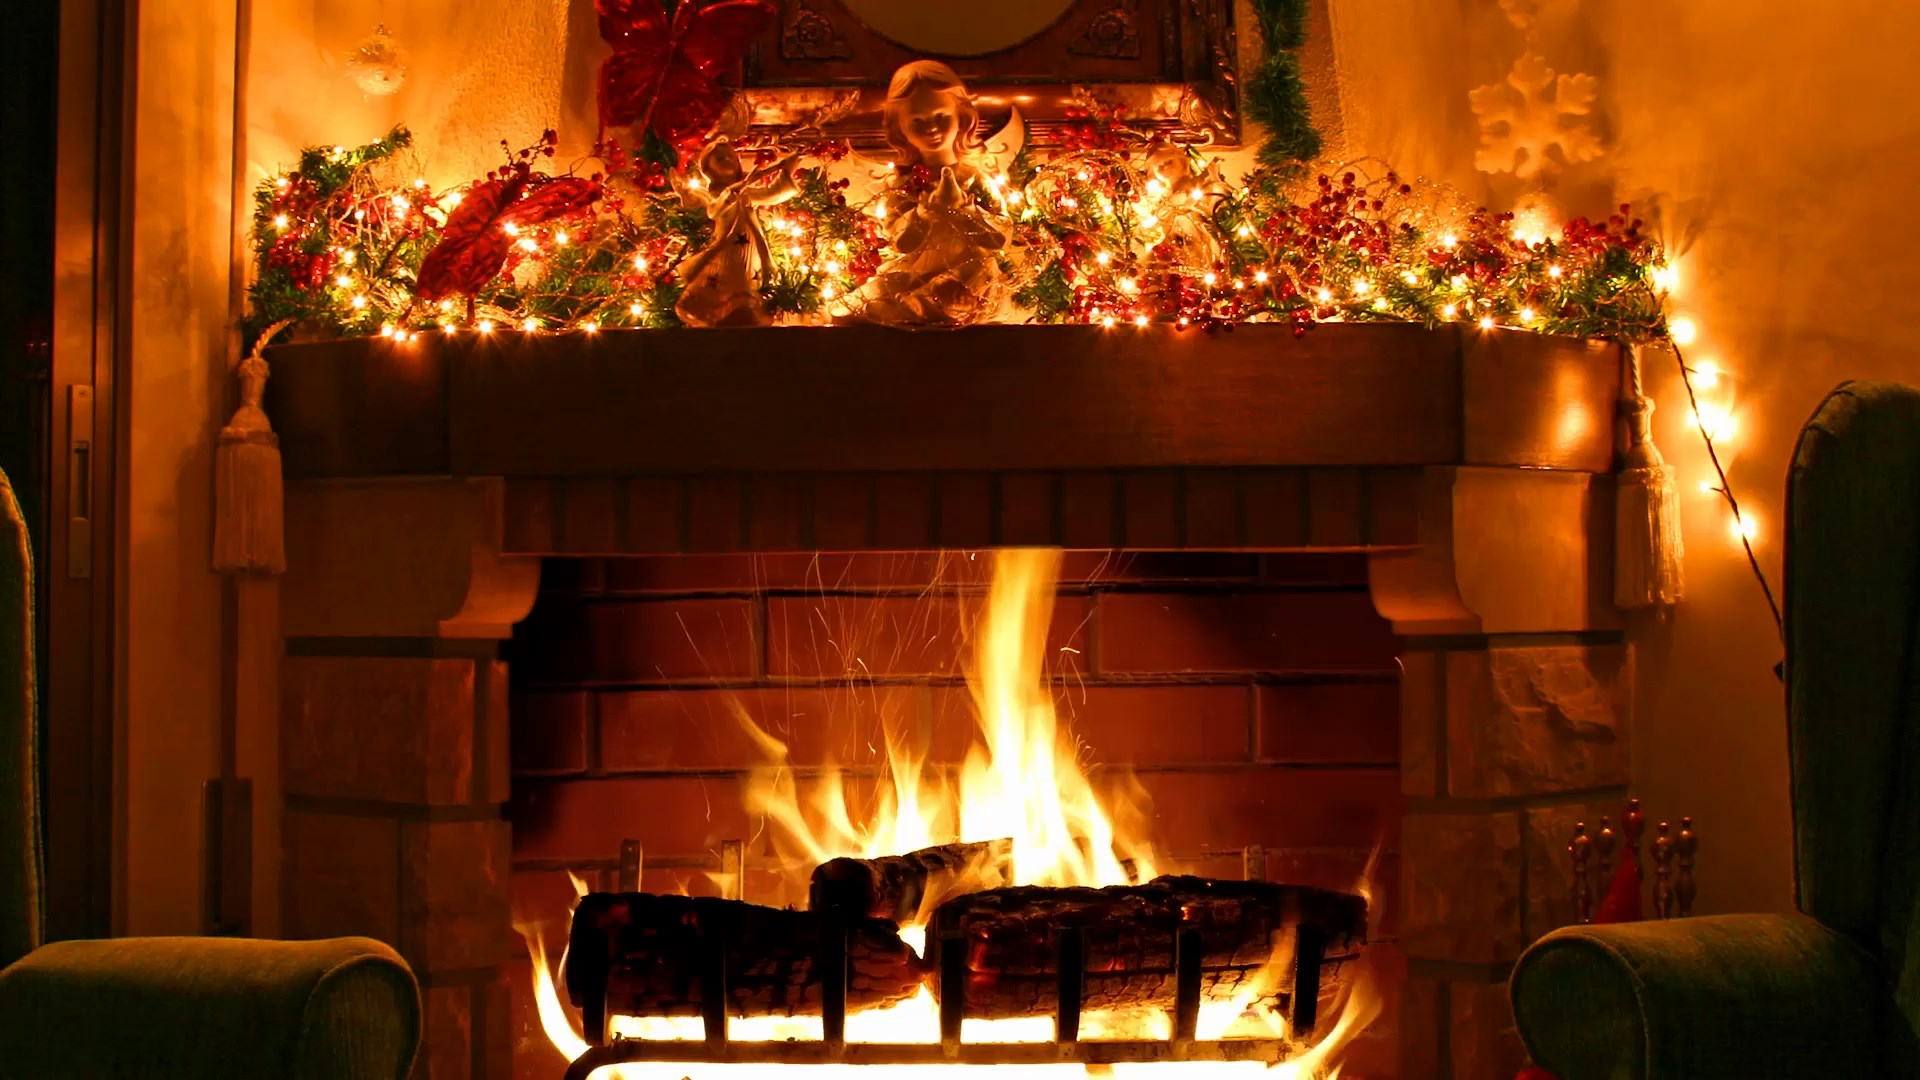 Christmas Fireplace Wallpaper Fireplace Christmas Decoration Live Wallpapers